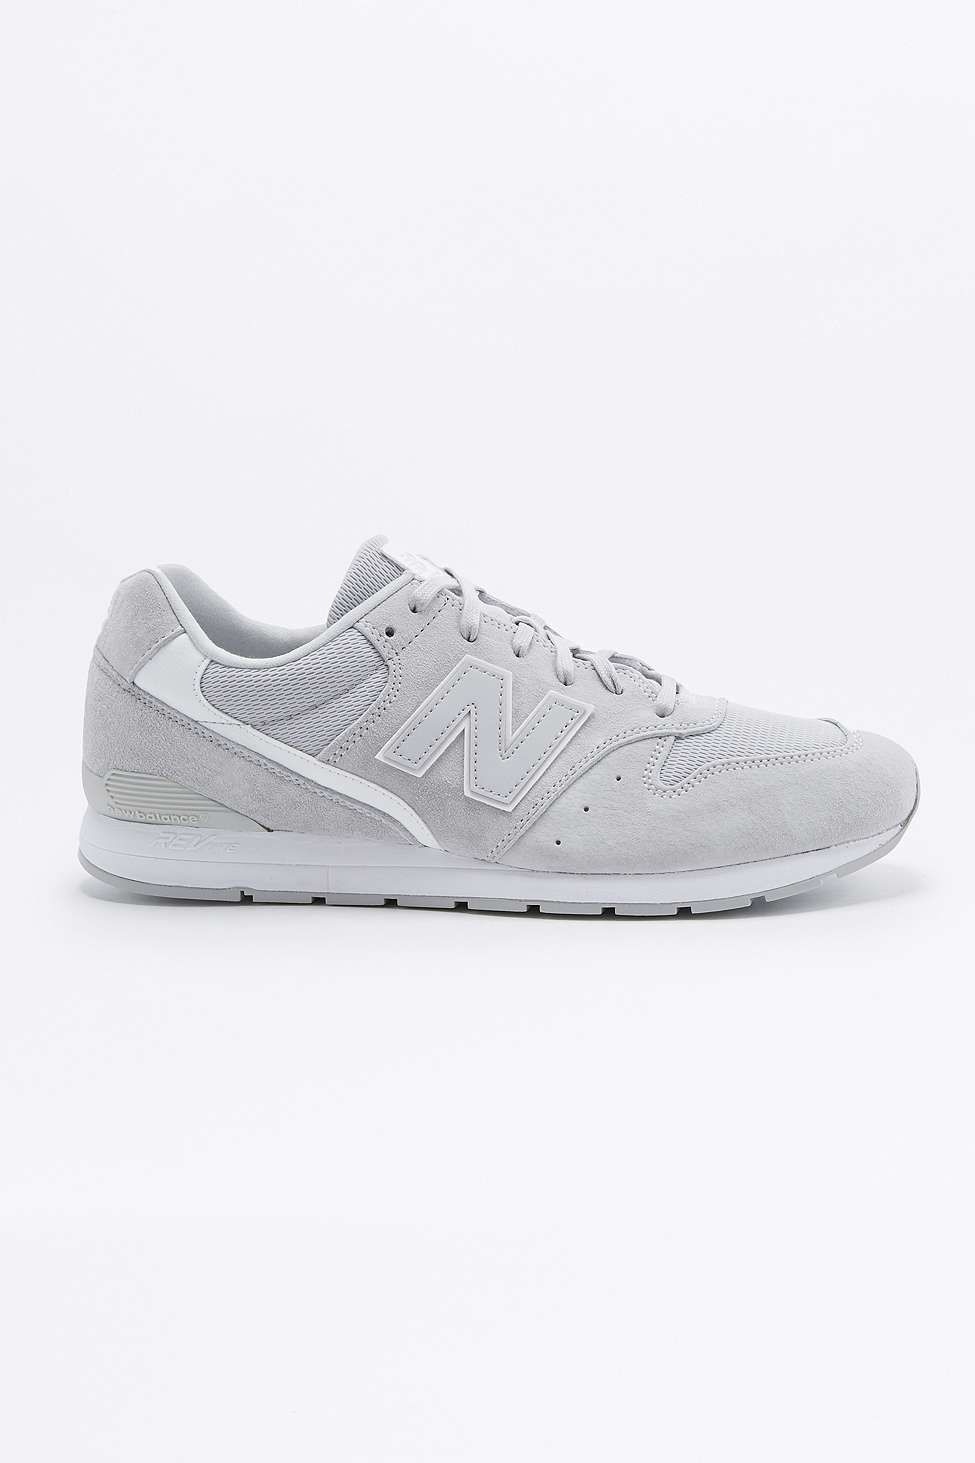 5f87f28b4662 New Balance 996 Grey Suede Trainers